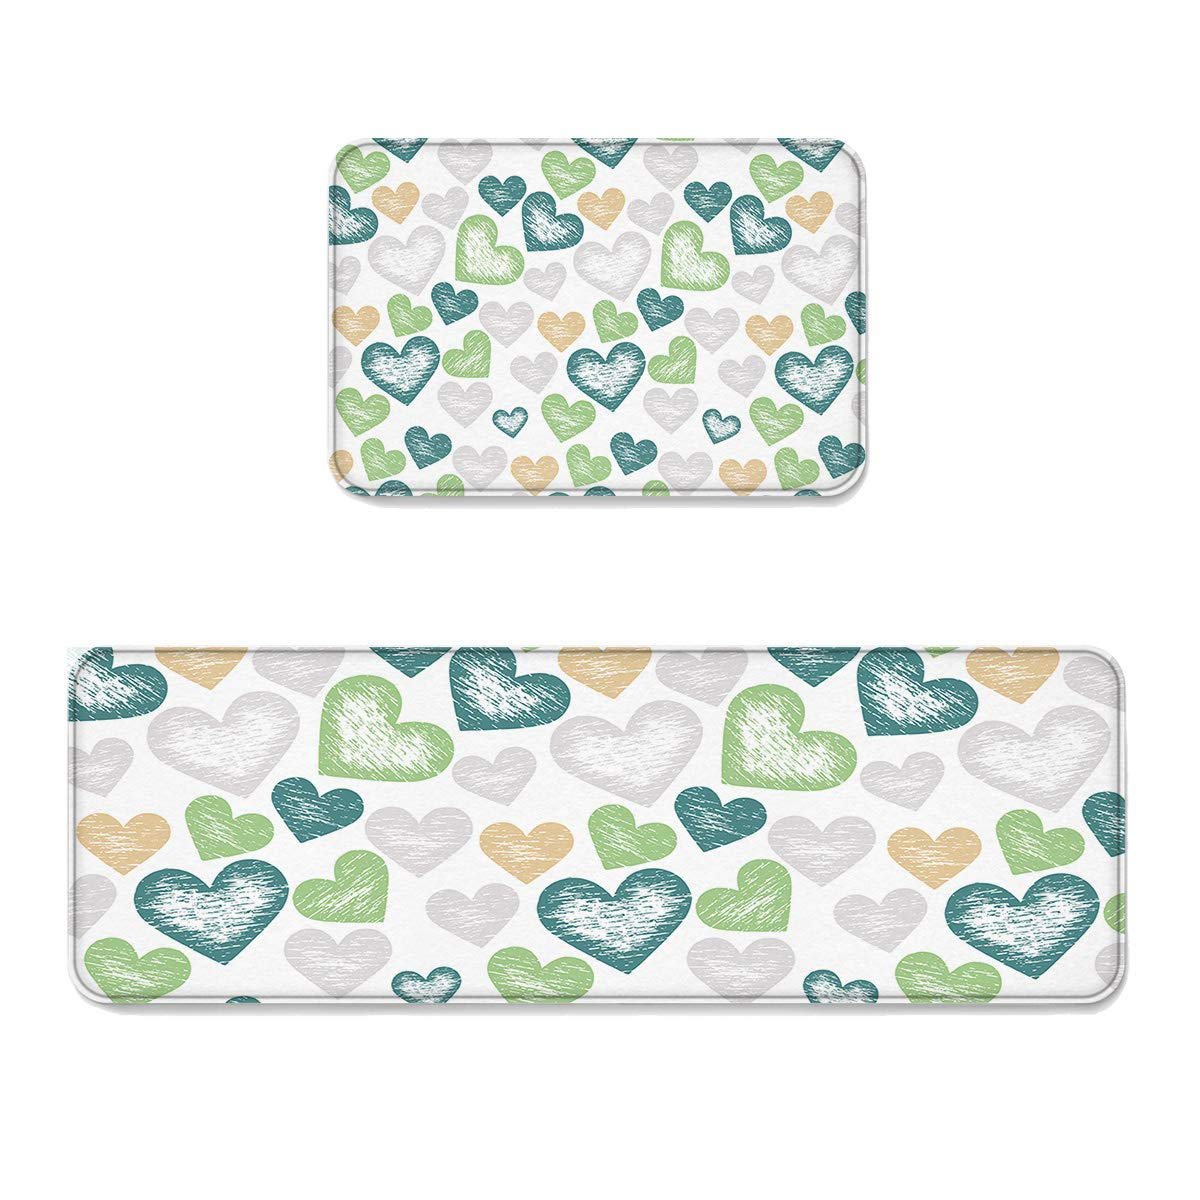 Happy Valentine's Day3003lfsr7991 23.6\ Kitchen Rug Sets 2 Piece Floor Mats Non-Slip Rubber Backing Area Rugs Simple Plain Hand Drawn Sketch Hearts Pattern Doormat Washable Carpet Inside Door Mat Pad Sets (23.6  x 35.4 +23.6  x 70.9 )